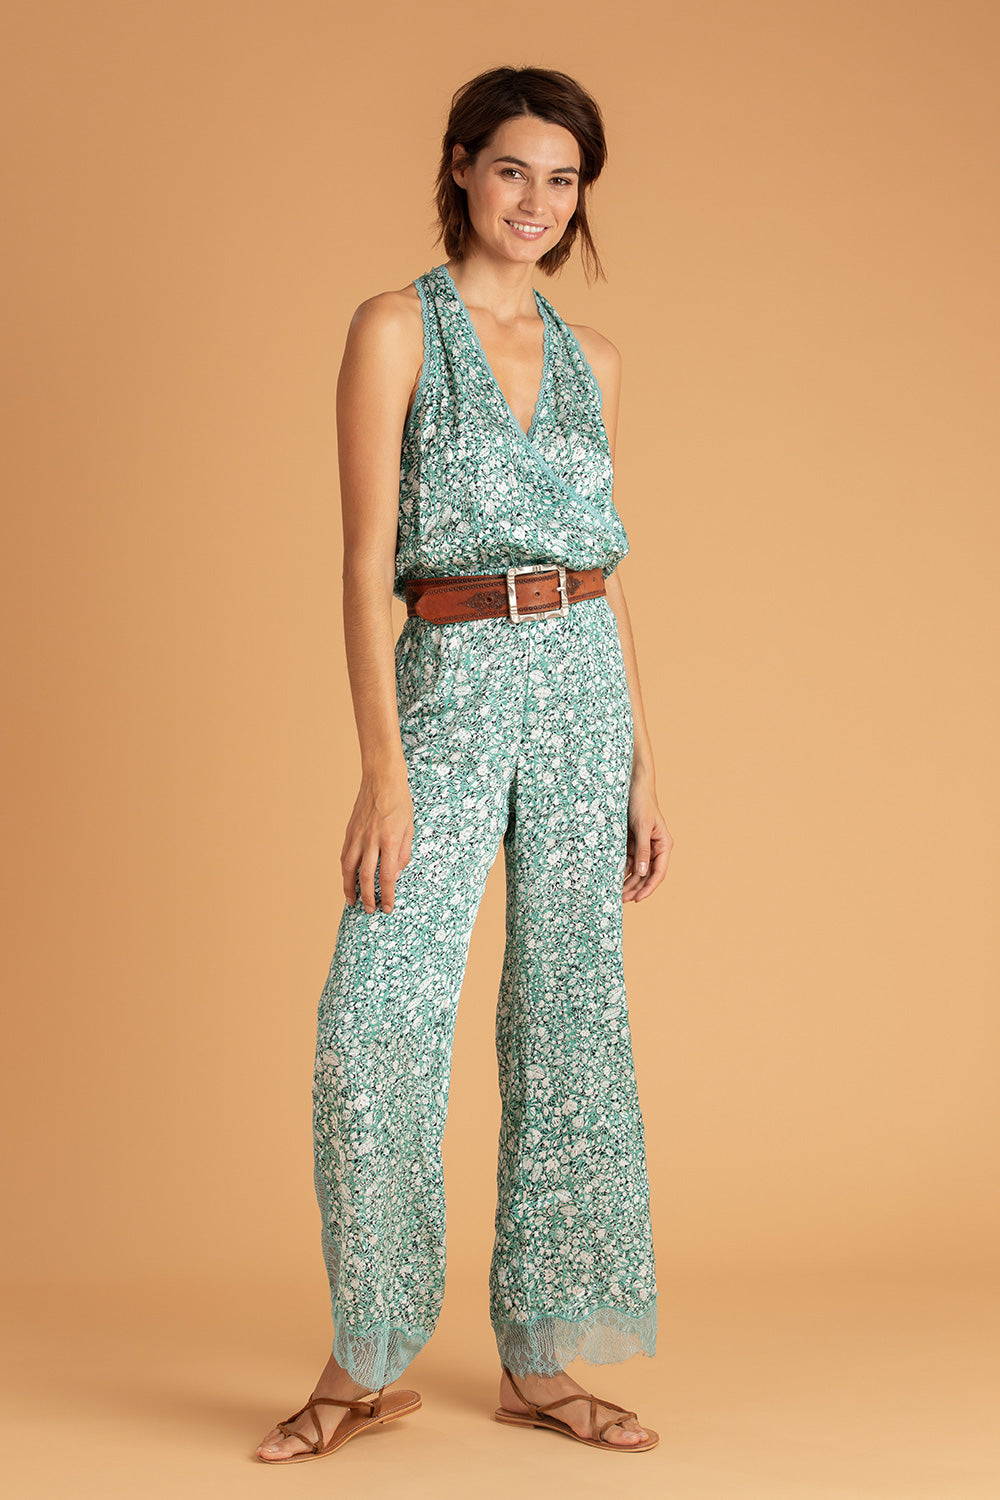 Long Jumpsuit Lucia Lace Trimmed - Aqua Aspen